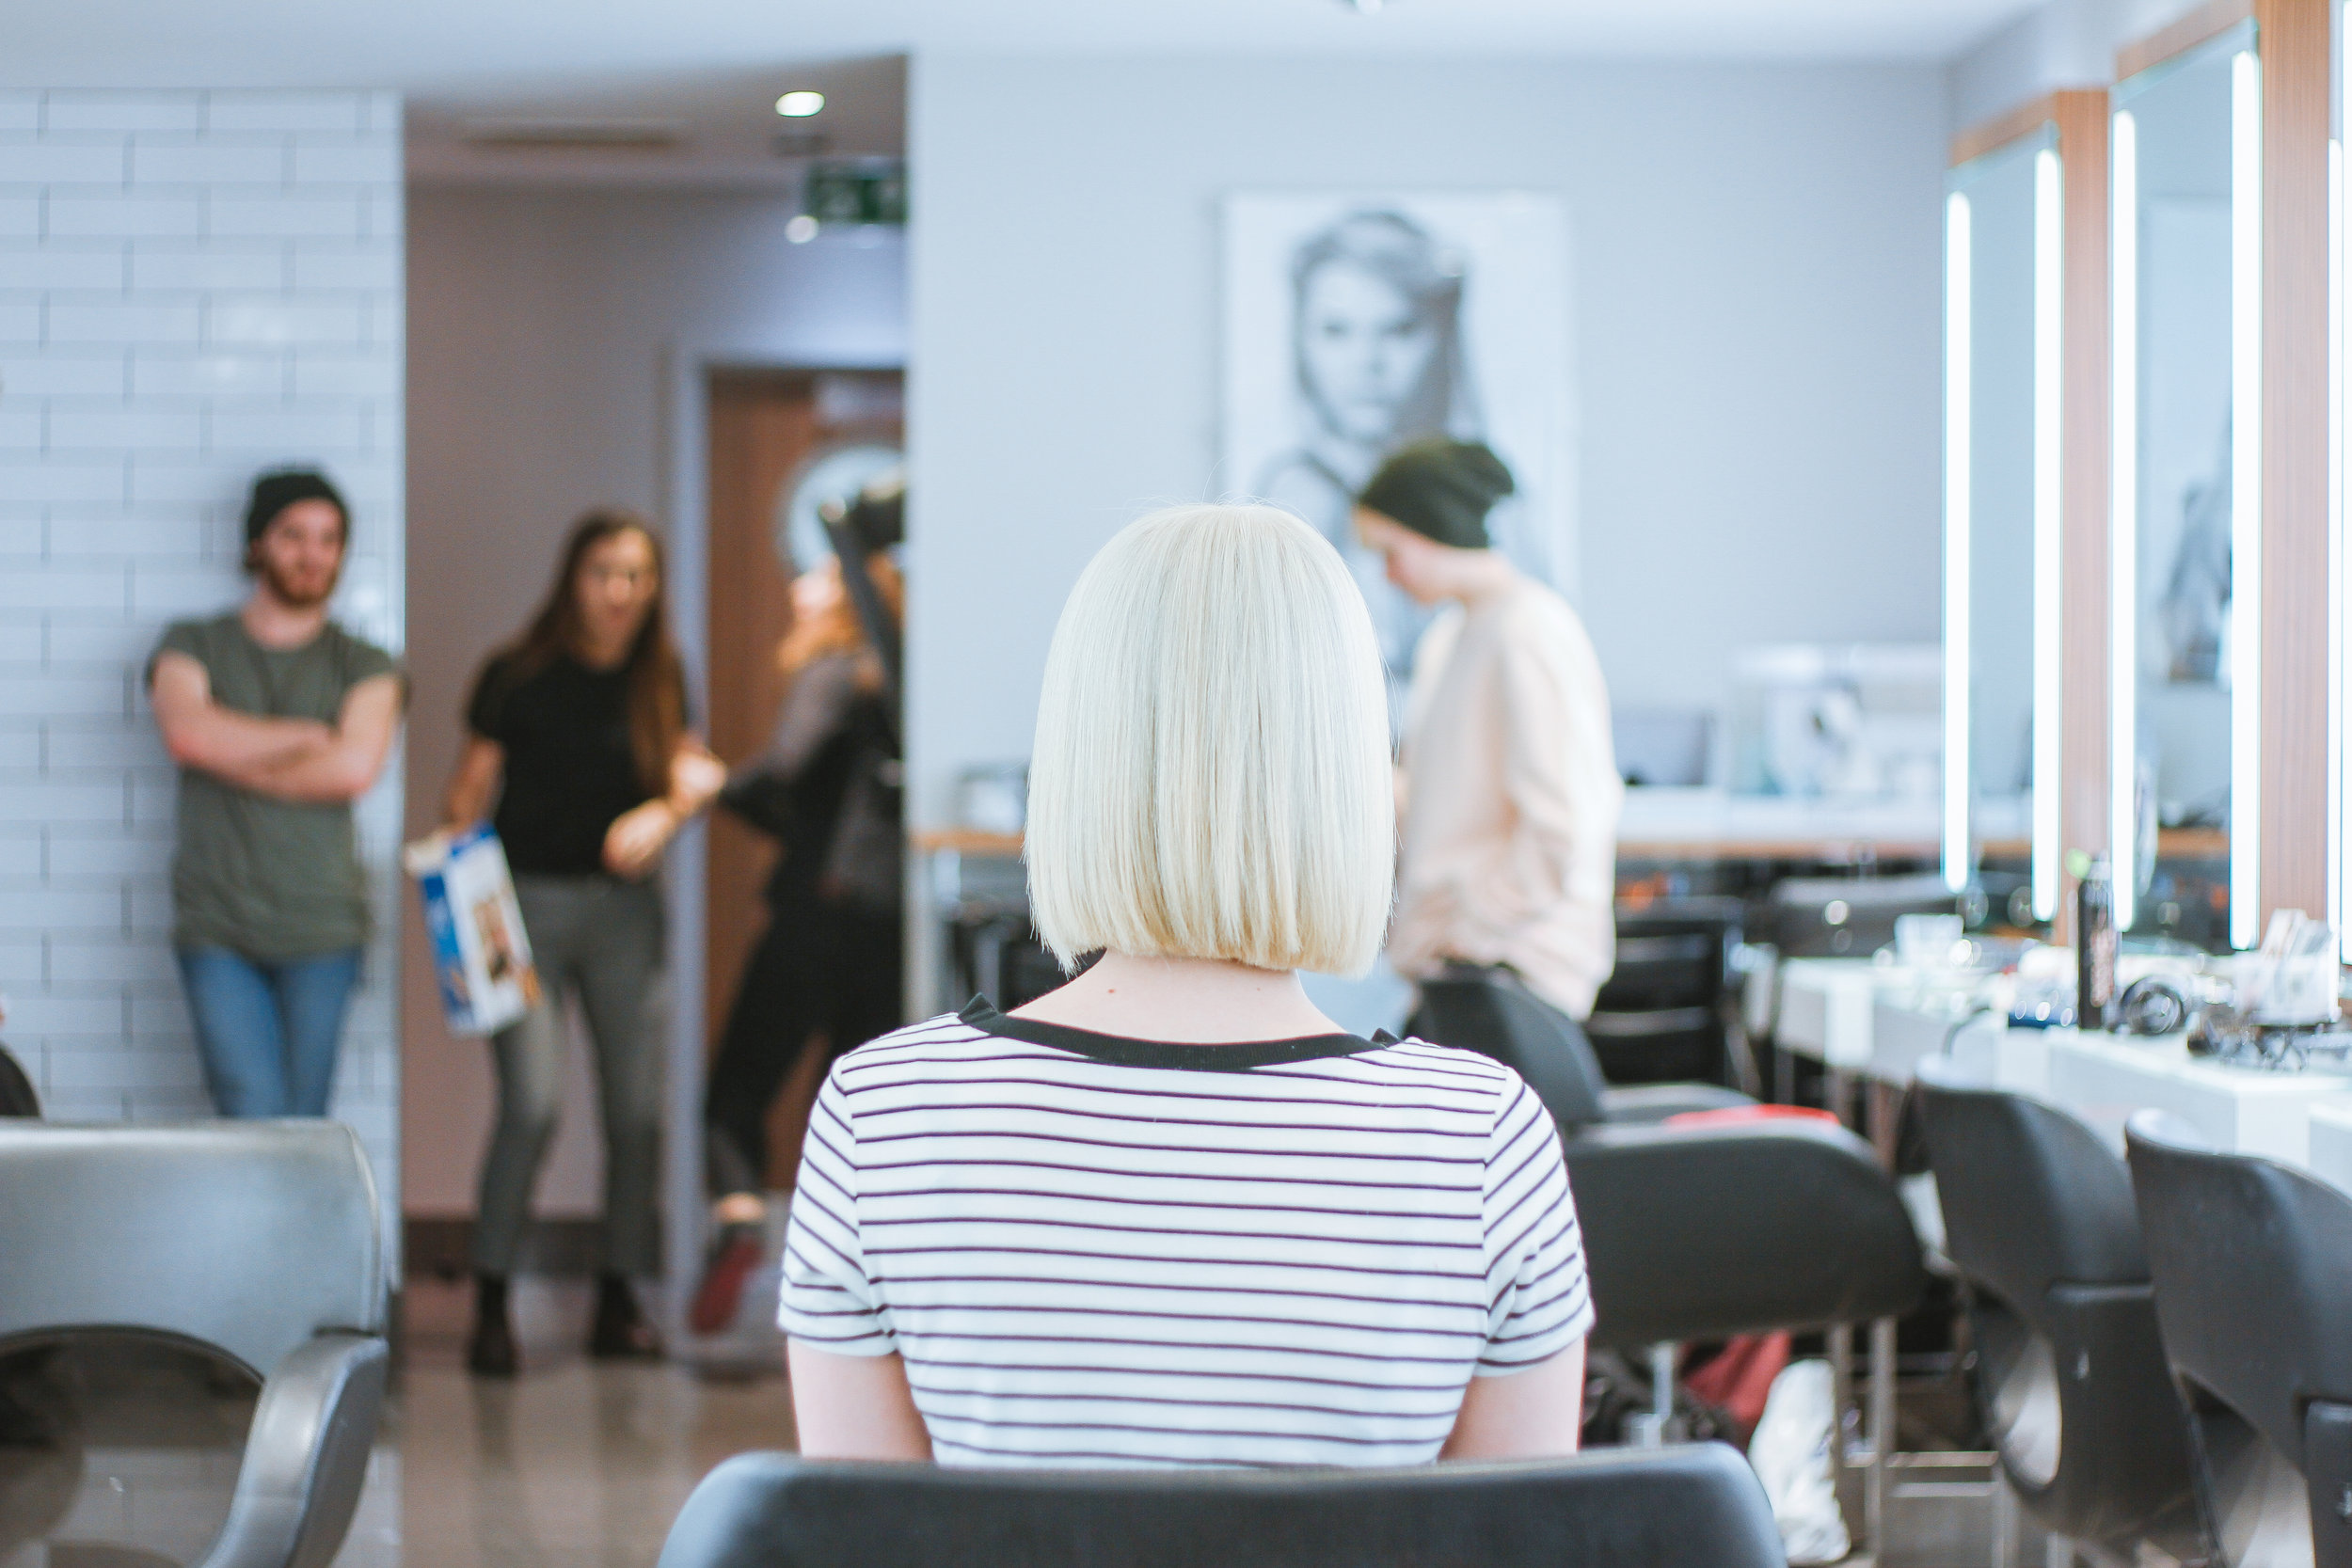 Sin Republic Salon - Infinite Hair SculptingFor years, Sin Republic Salon has lead the trends throughout Grand Rapids. Whether it's a color, styling, or a simple cut - we've got you covered.We have two locations in Grand Rapids. See our hours below.